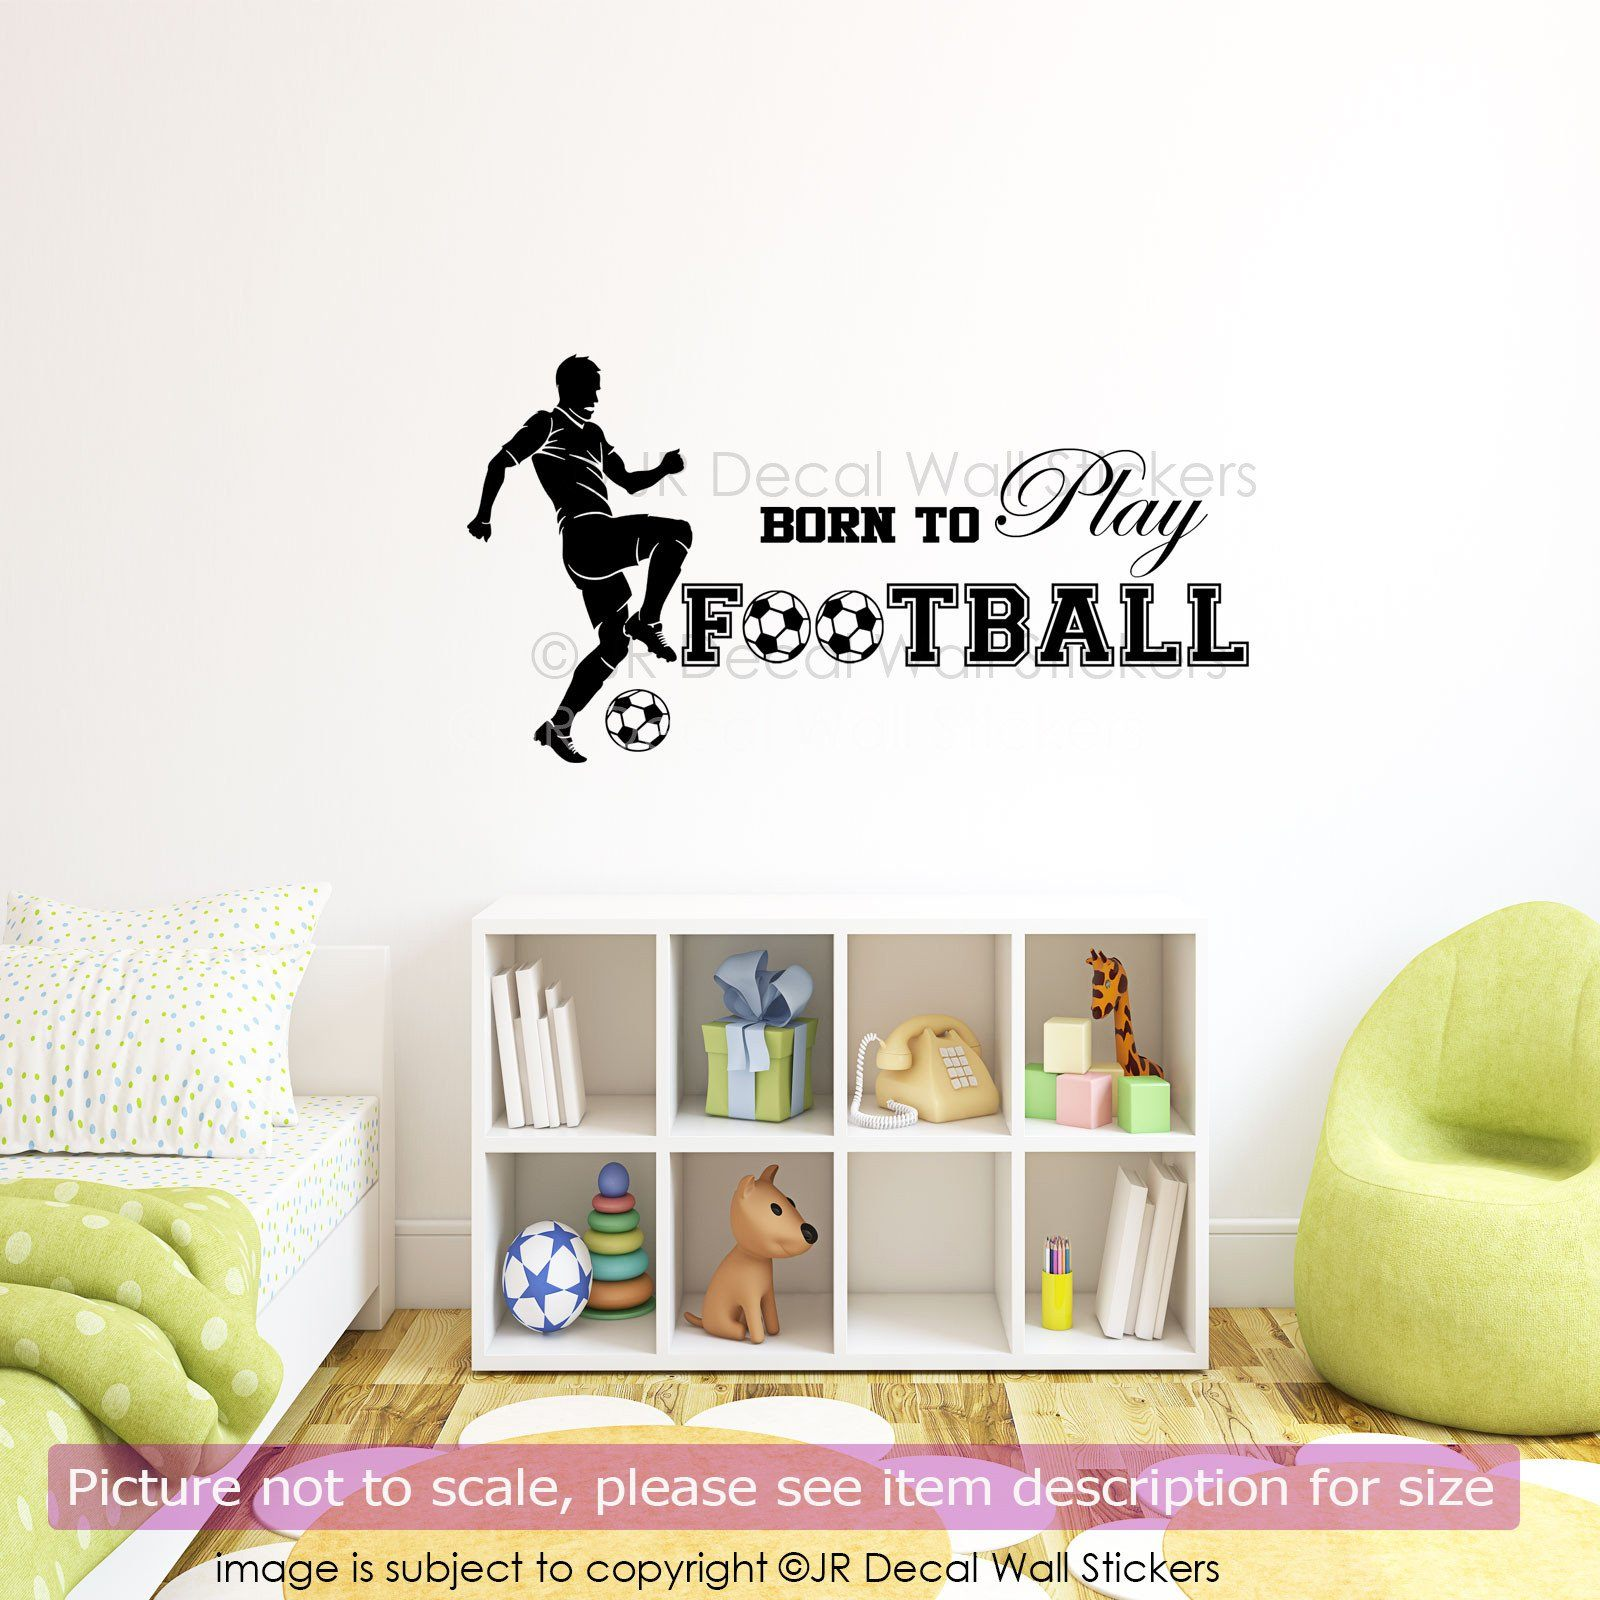 Born to play football vinyl wall stickers sports decal jr decal born to play football sports vinyl wall decal sp 40 amipublicfo Images